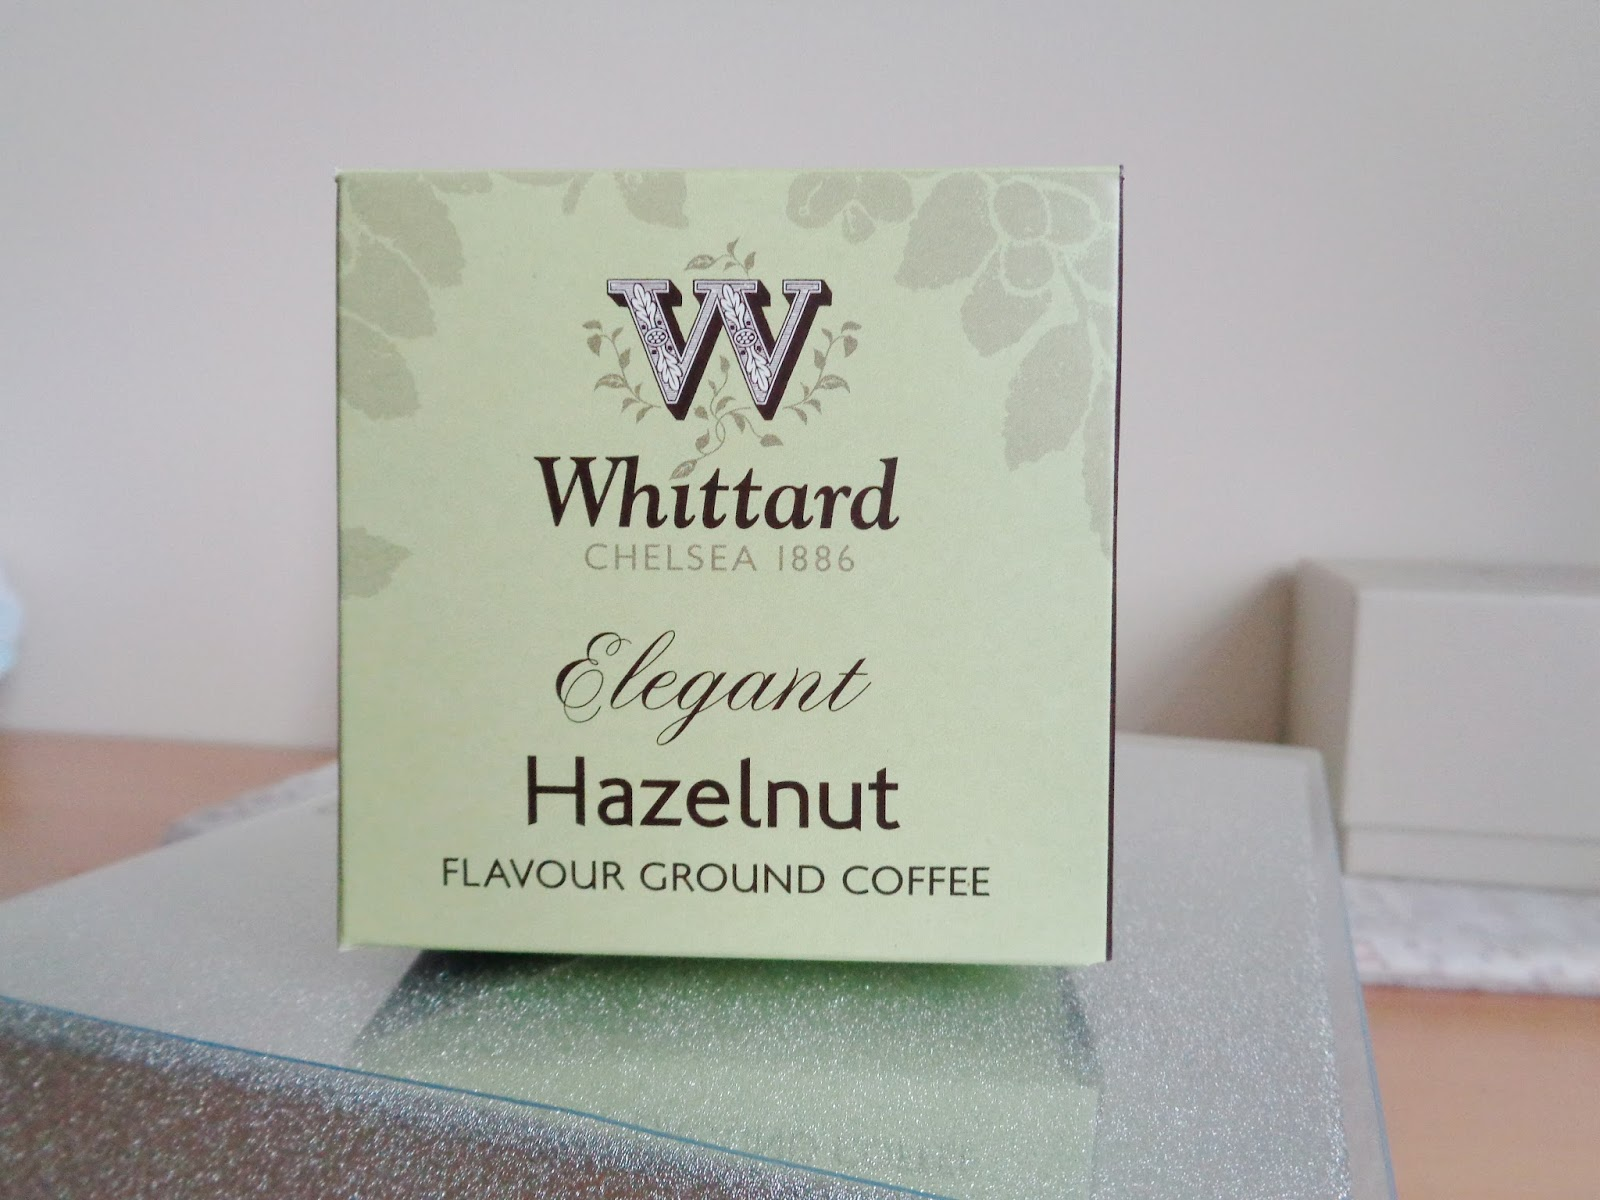 Whittards Hazelnut Flavour Ground Coffee